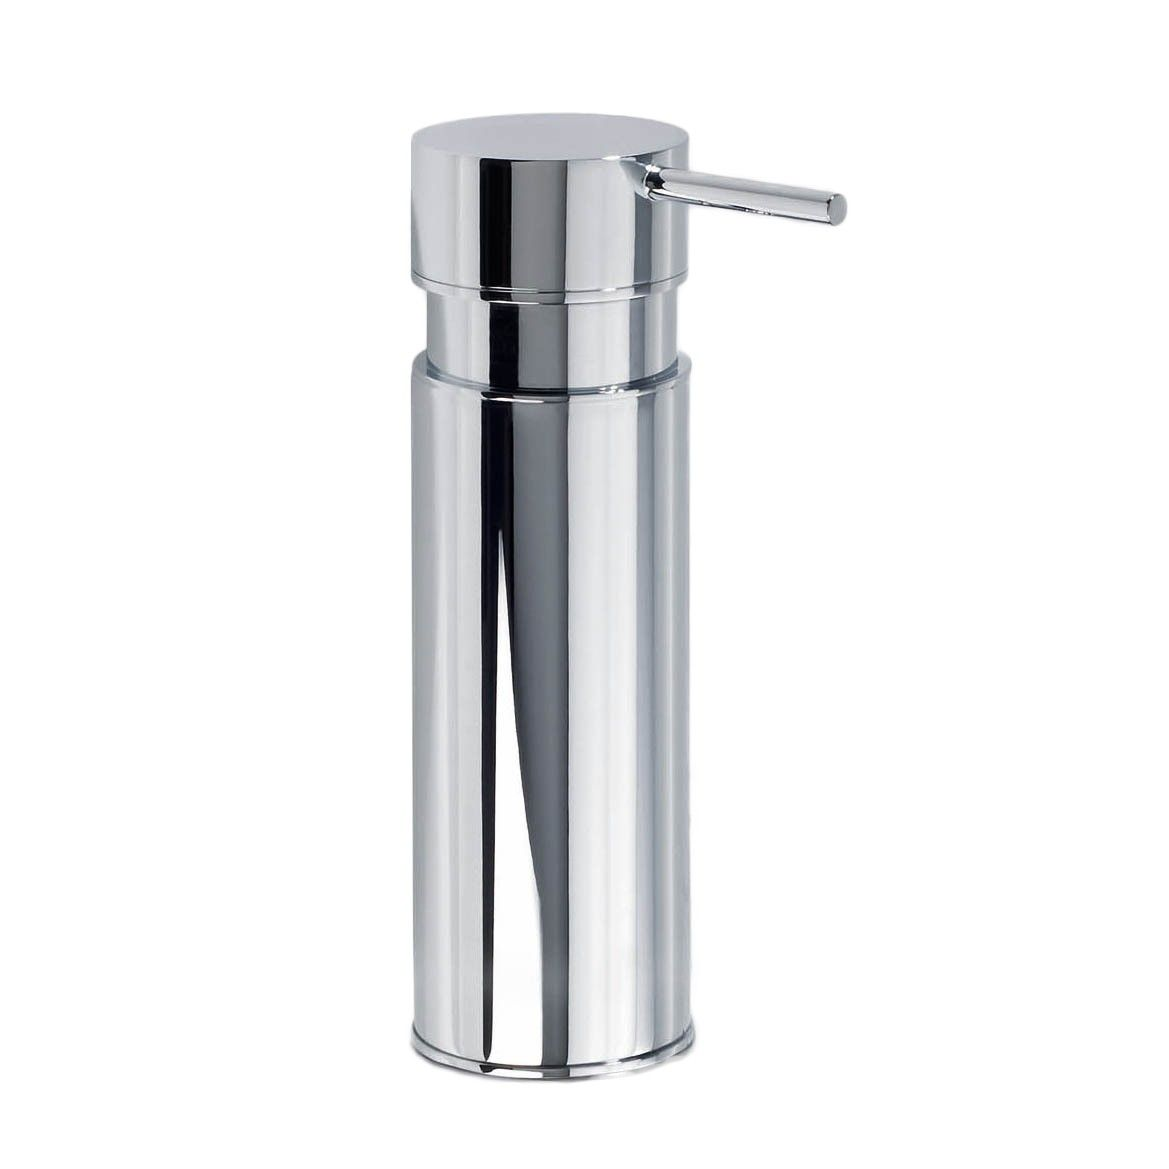 Harmony 412 Free Standing Soap Dispenser Soap Dispenser Modern